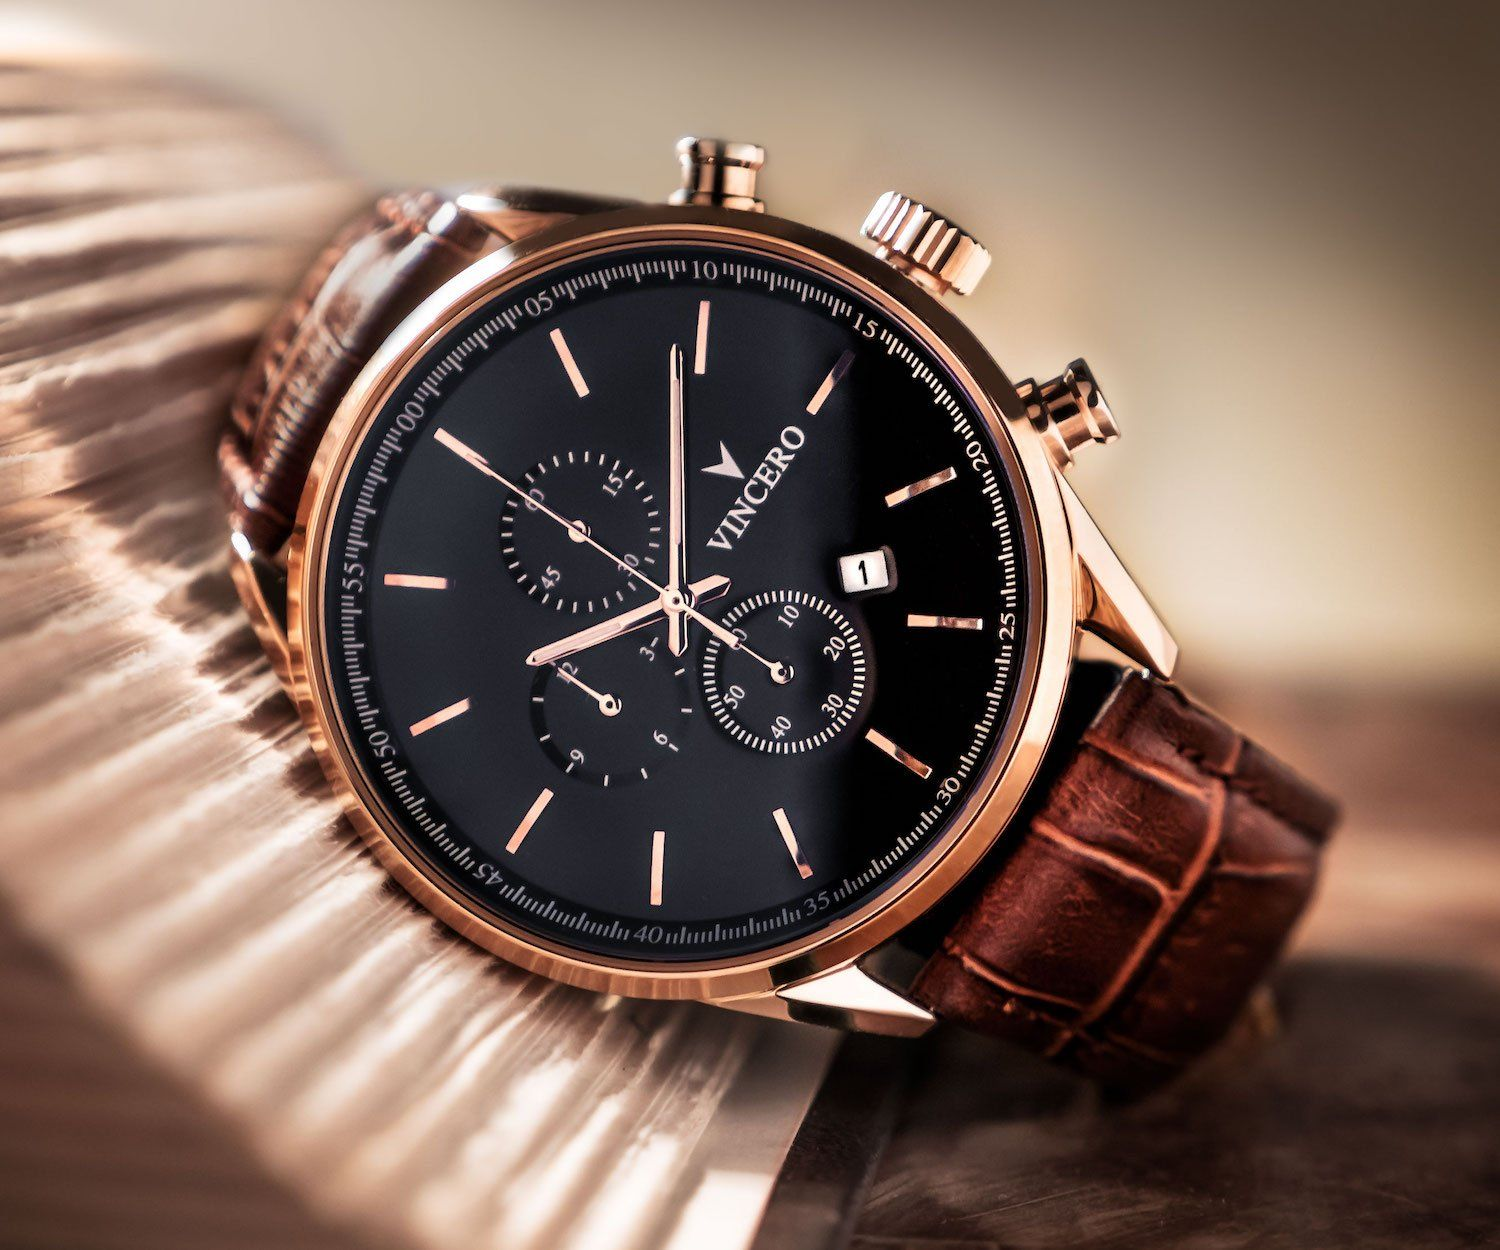 The Chrono S Rose Gold Luxury Watches For Men Watches For Men Cool Watches